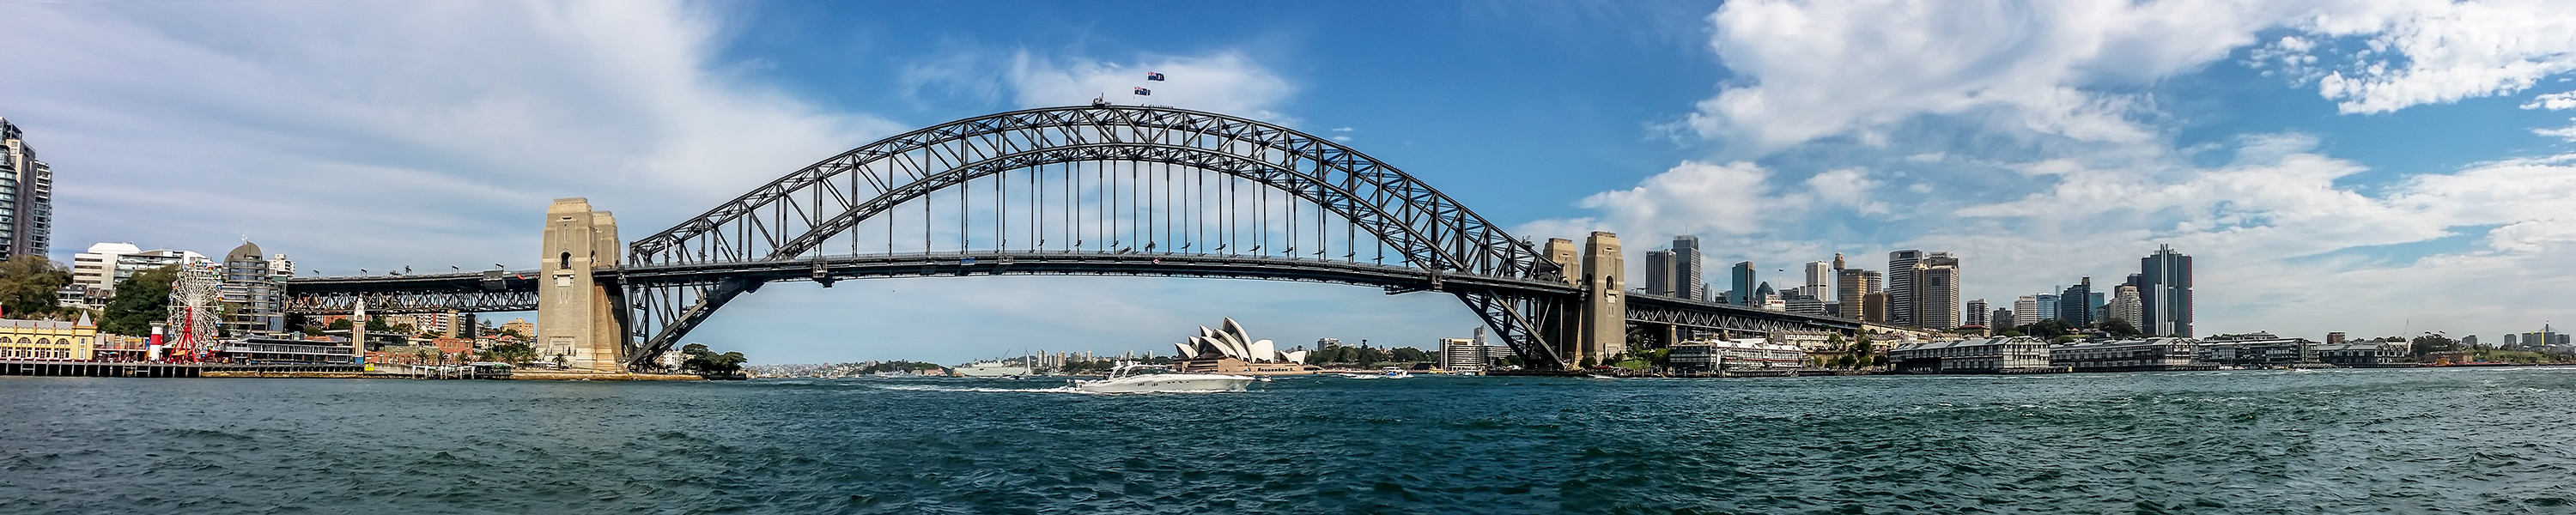 Sydney Harbour NSW